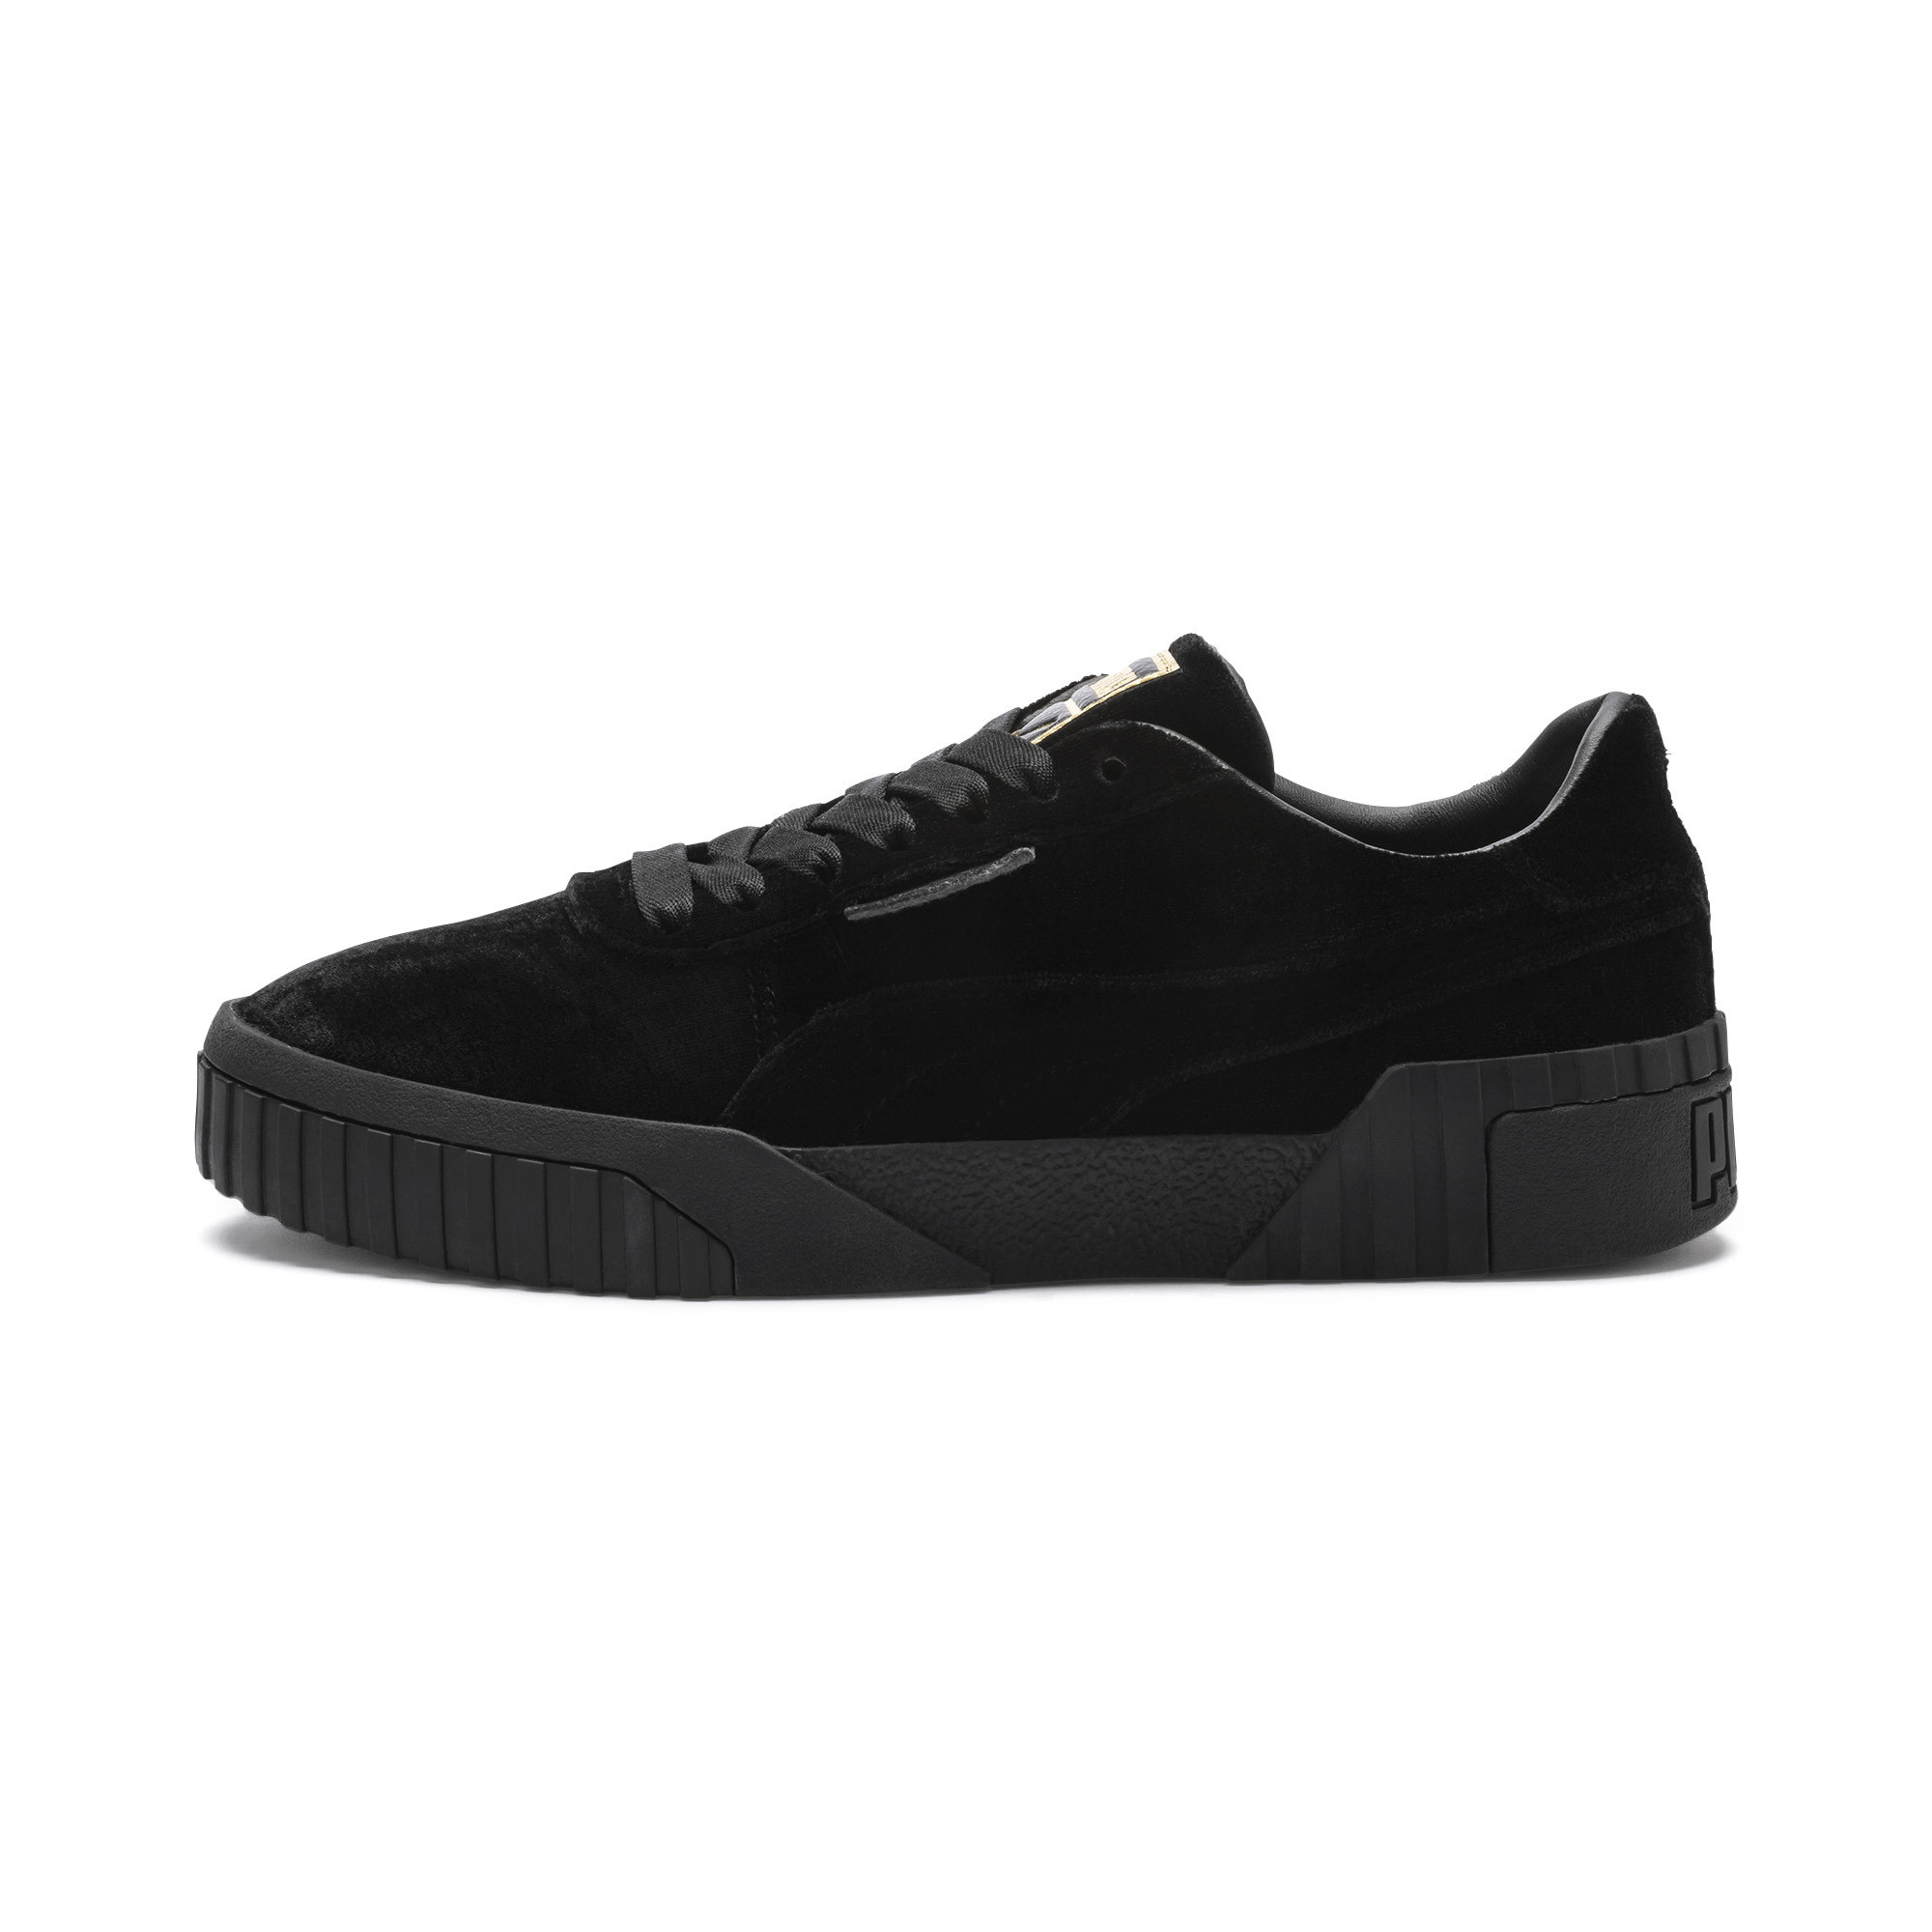 PUMA-Cali-Velvet-Women-039-s-Sneakers-Women-Shoe-Evolution thumbnail 4